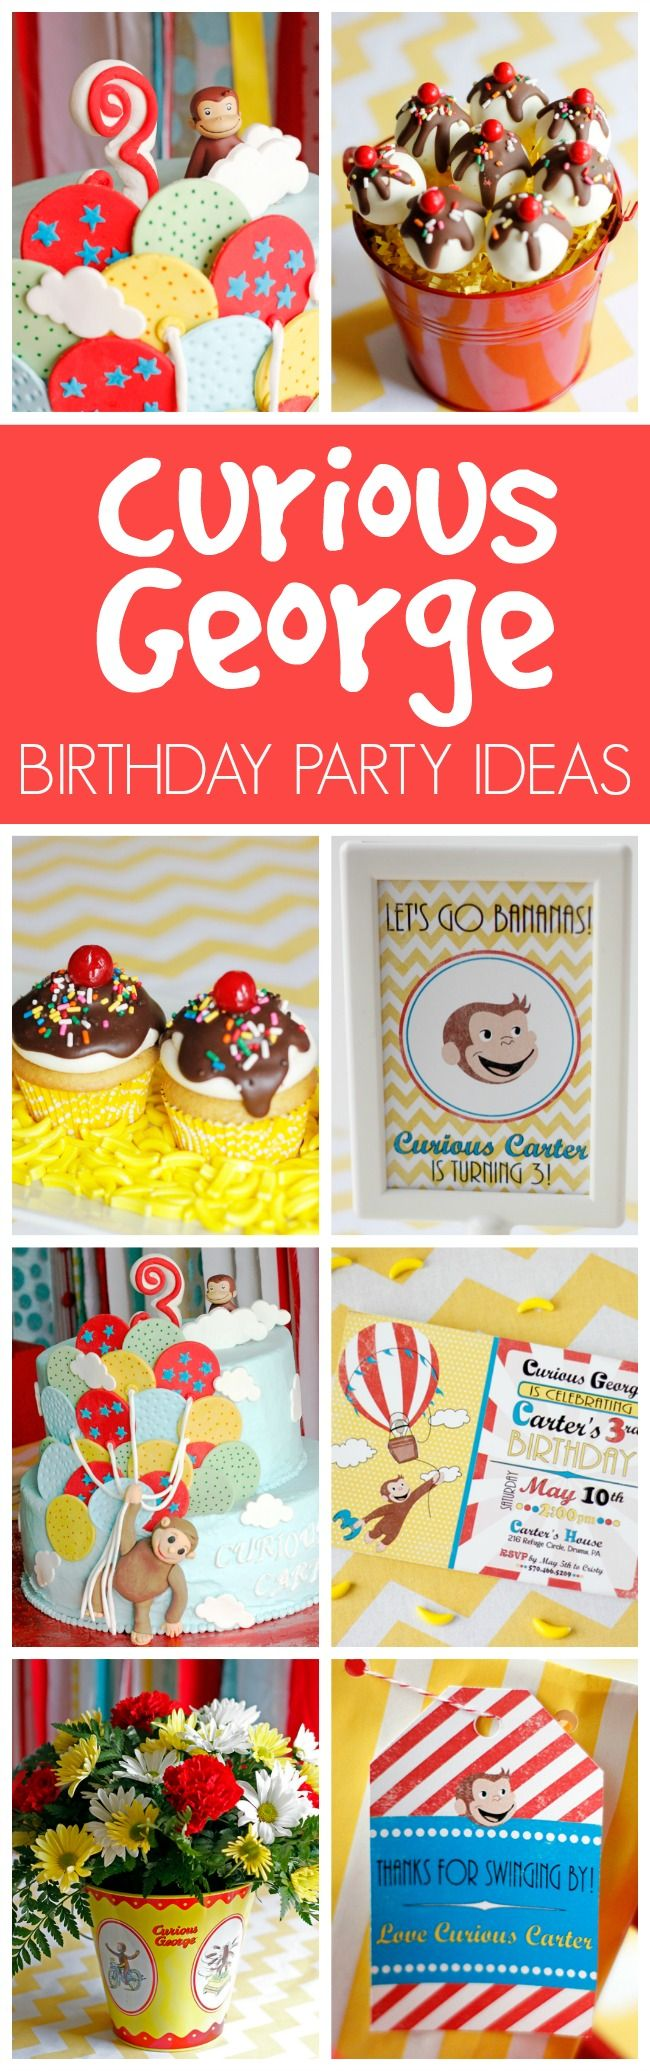 204 Best Curious George Party Ideas Images On Pinterest Curious